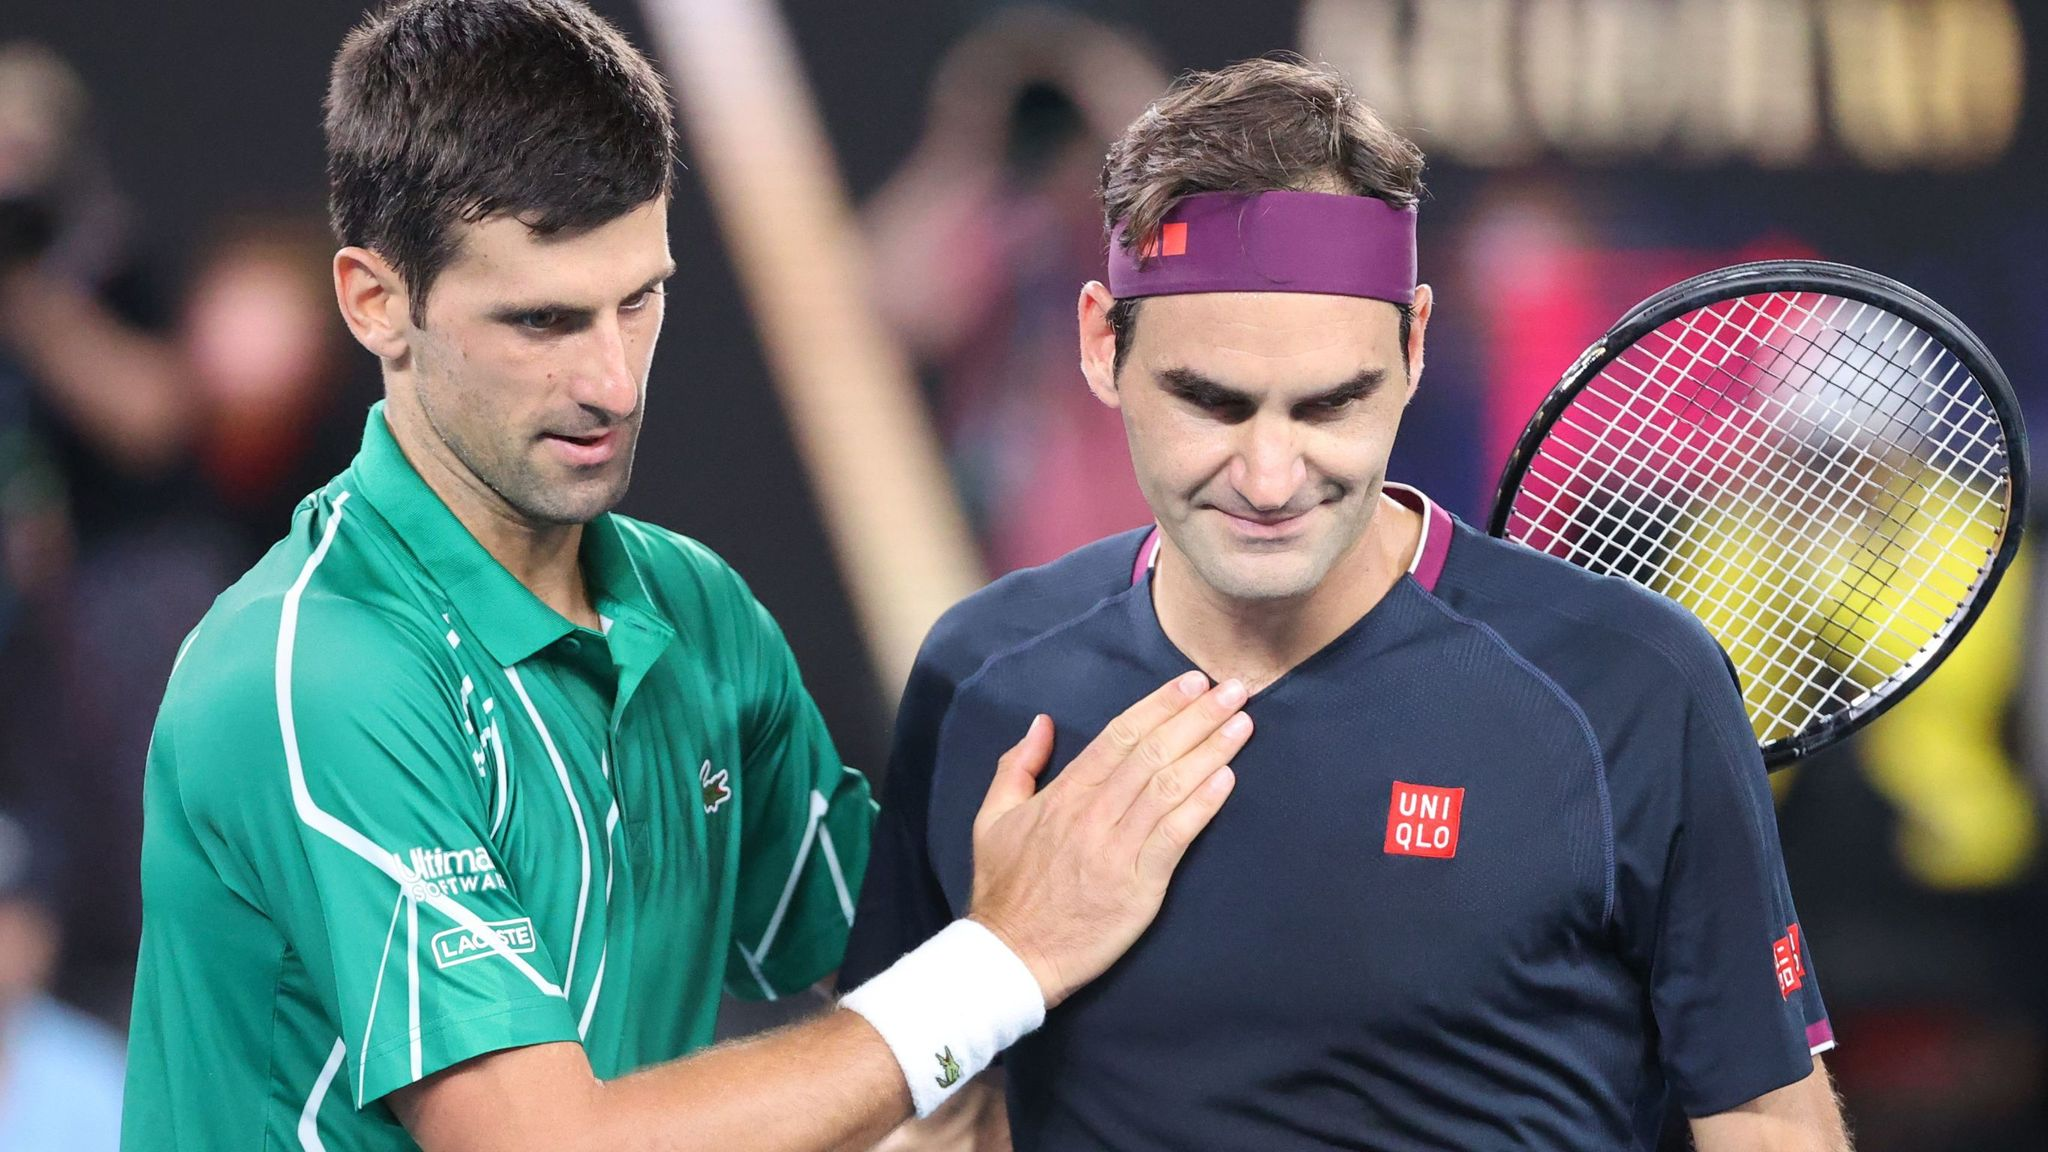 Novak Djokovic Says Roger Federer Will Be Missed After His Recent Knee Surgery Tennis News Sky Sports